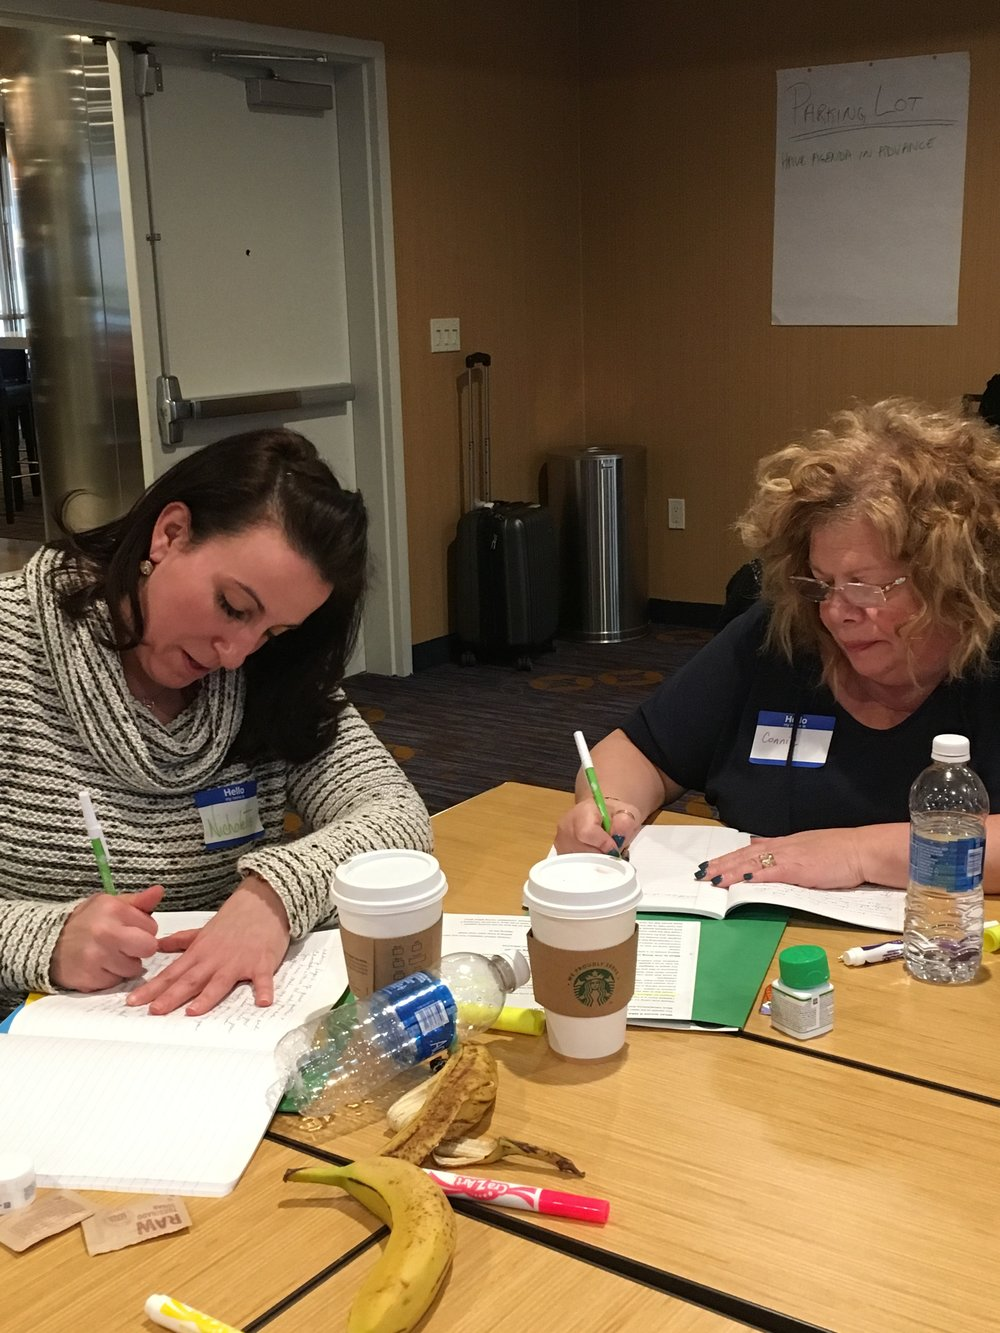 Participants participate in a Strengths Documentation activity.